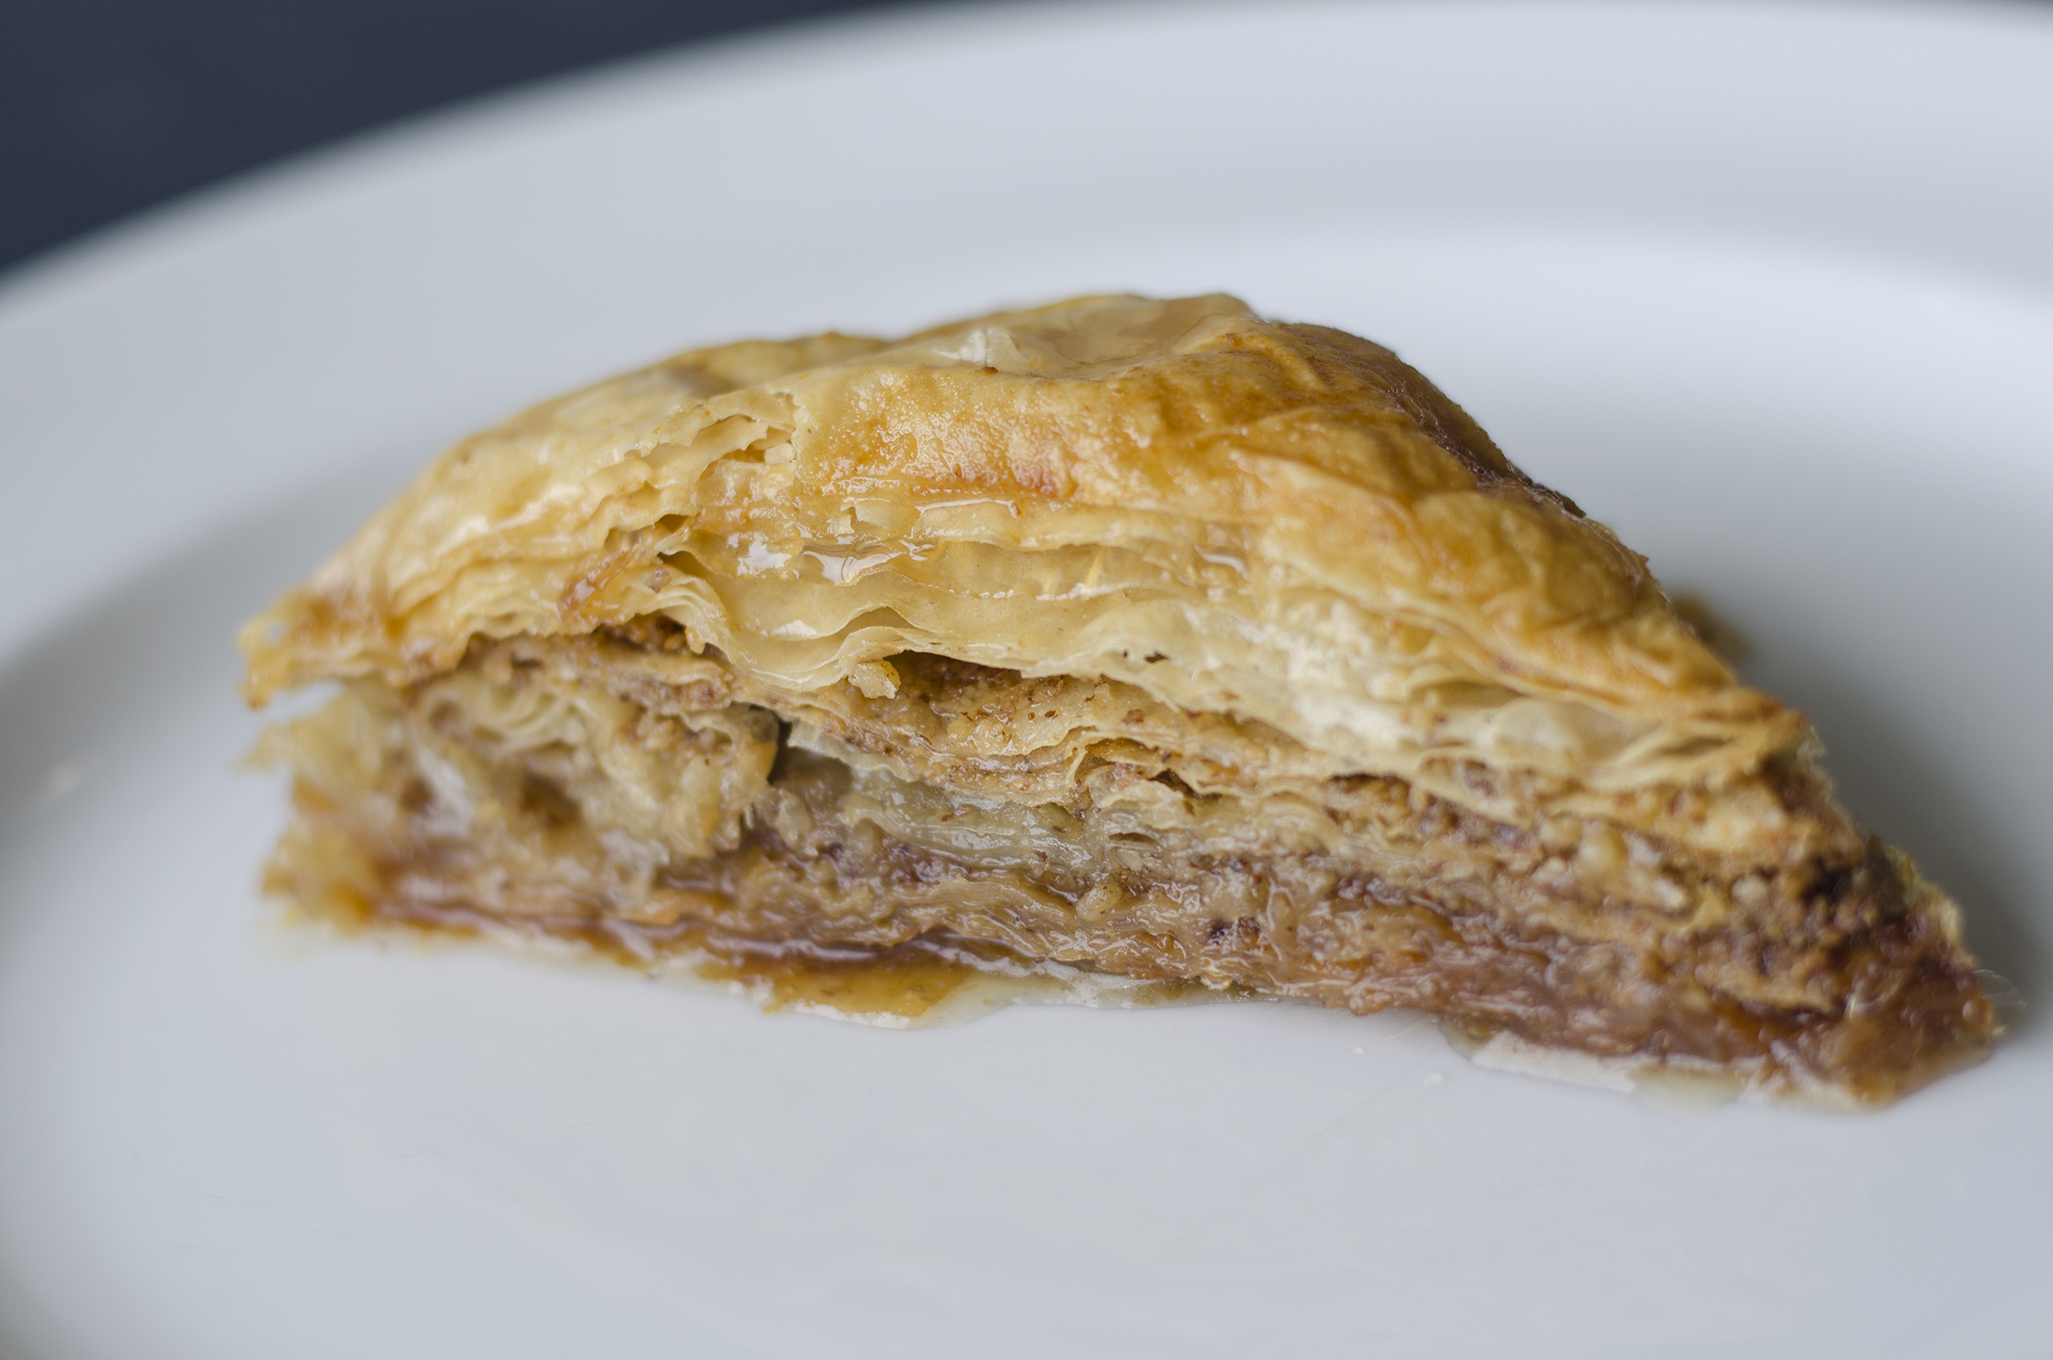 Baklava at Etta's Greeklish Eatery in Windsor, Ontario.